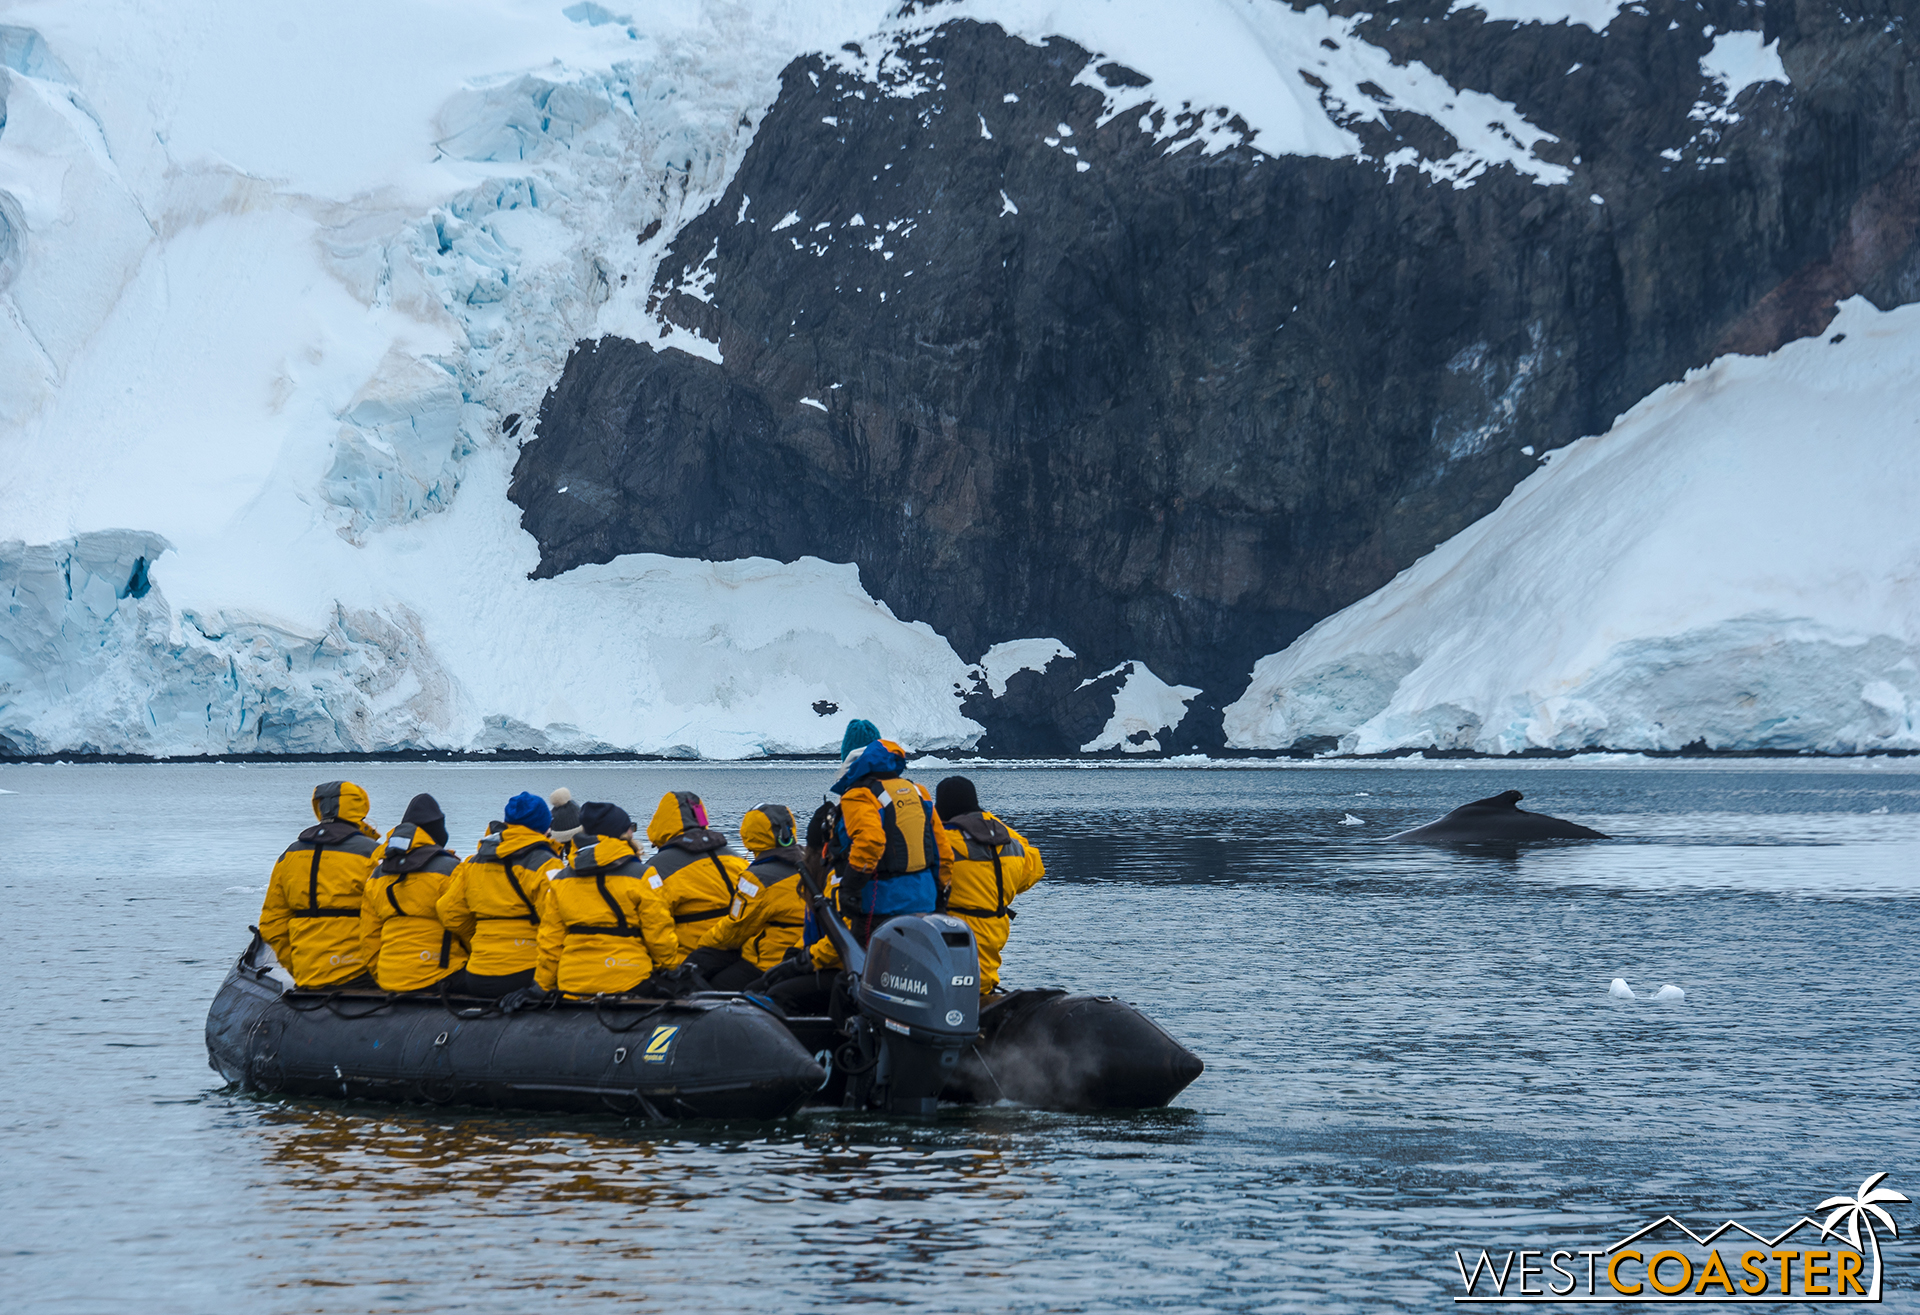 A Zodiac boat gets close to a humpback whale in Neko Harbour, one of many sites we visited in Antarctica.